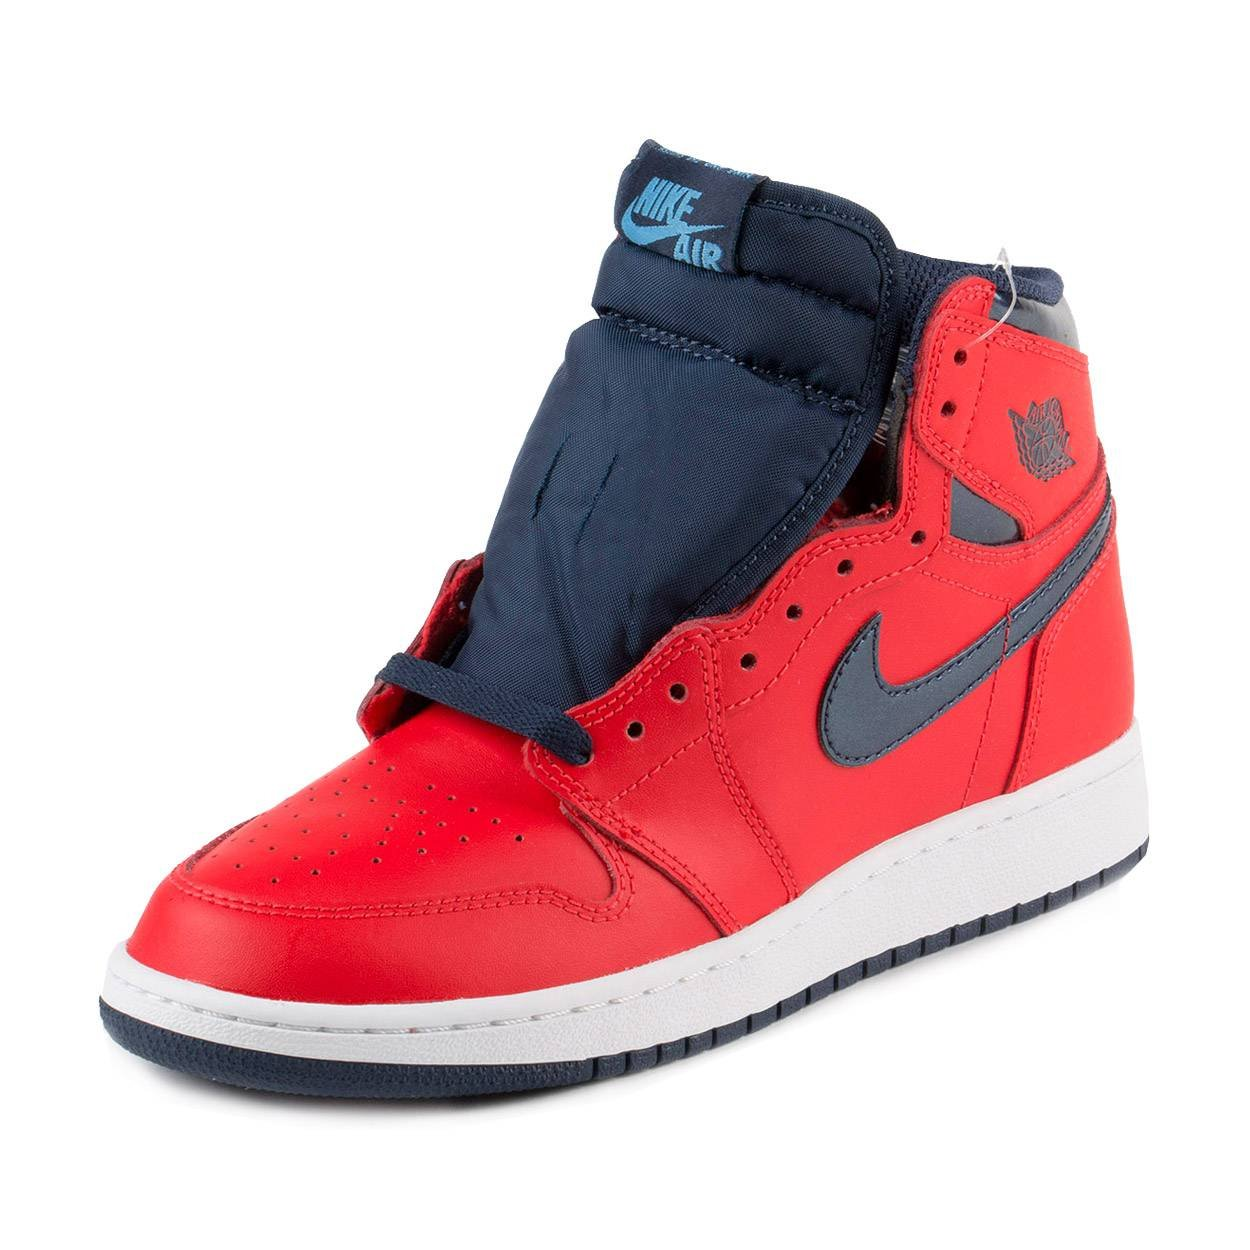 50bf3eb63a2e7d Galleon - Jordan Air 1 Retro High OG BG David Letterman Youth Sneakers New  Light Crimson - 6.5